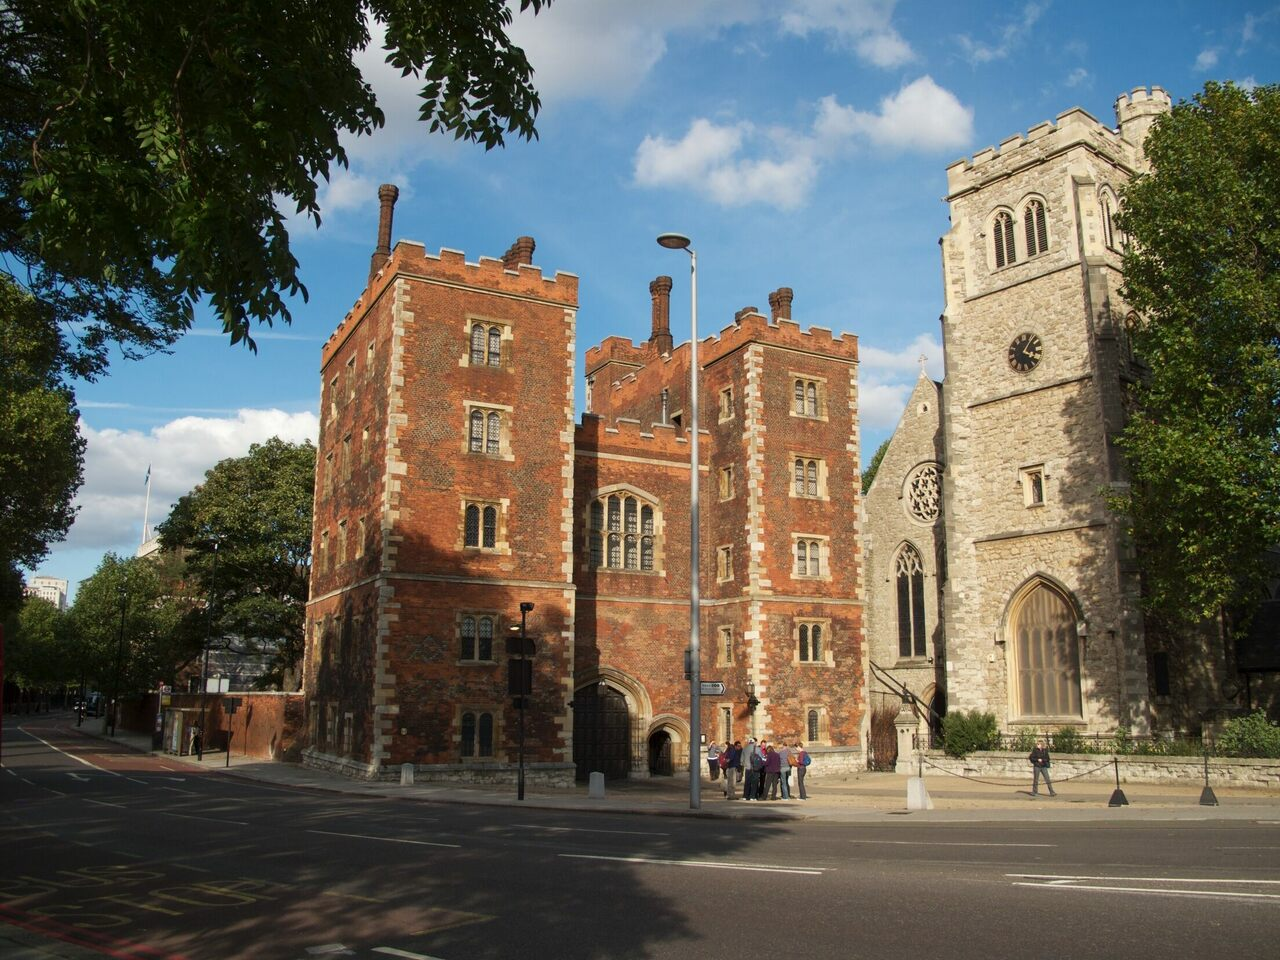 The manuscript with royal edits has spent the last 400 years in London's Lambeth Palace Library.